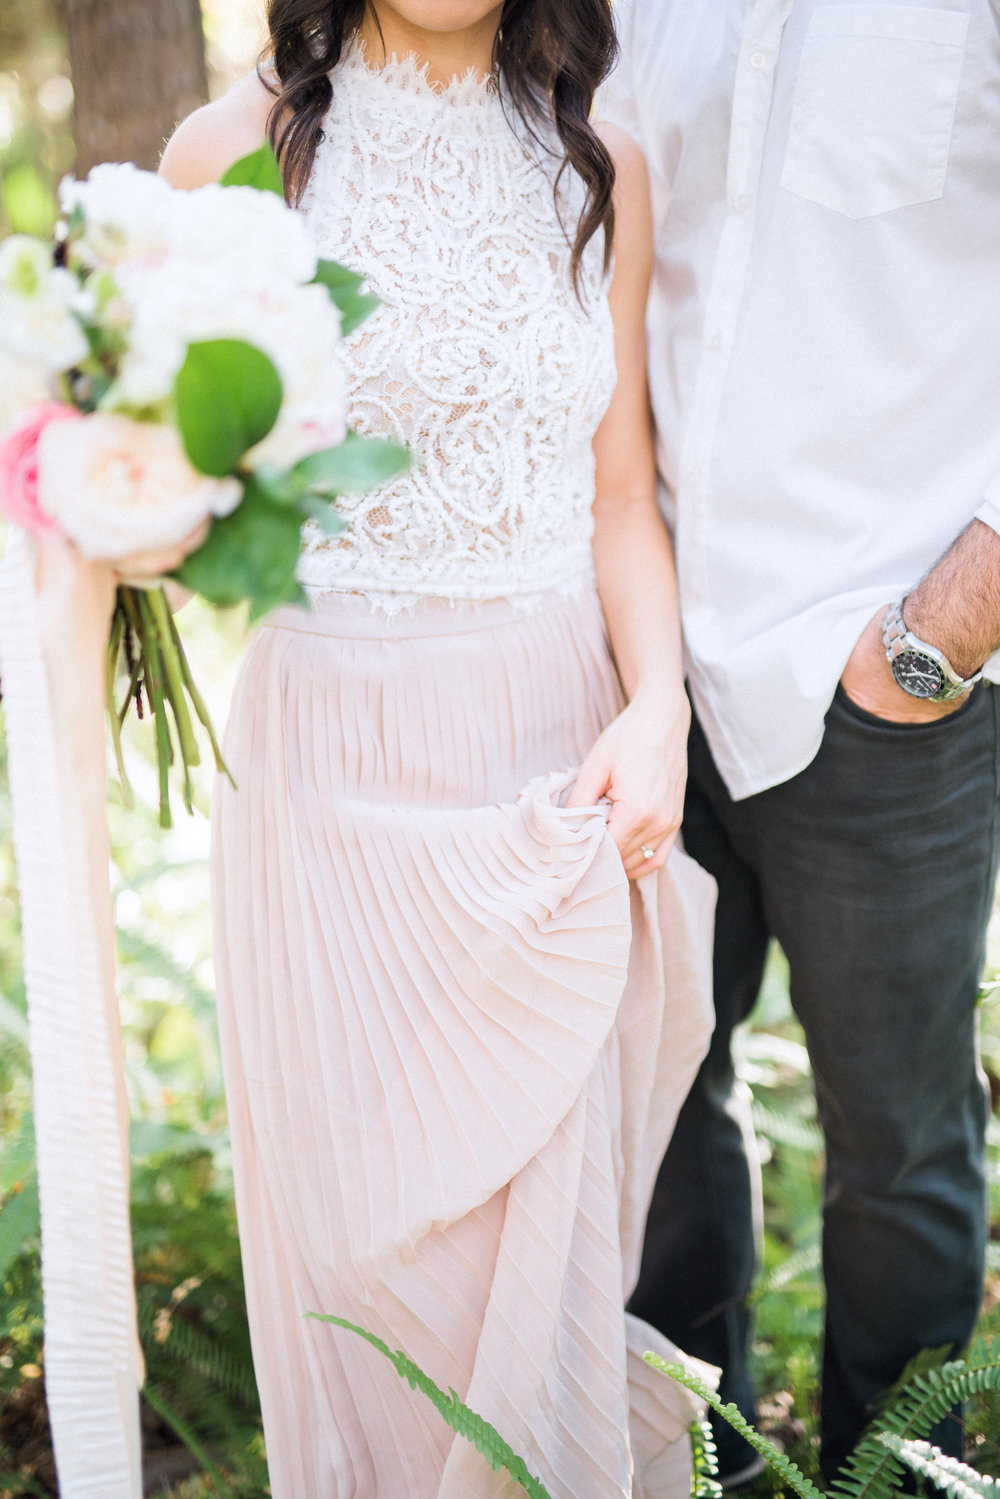 styled+engagement+session+at+Wekiwa+Springs+State+Park.jpg